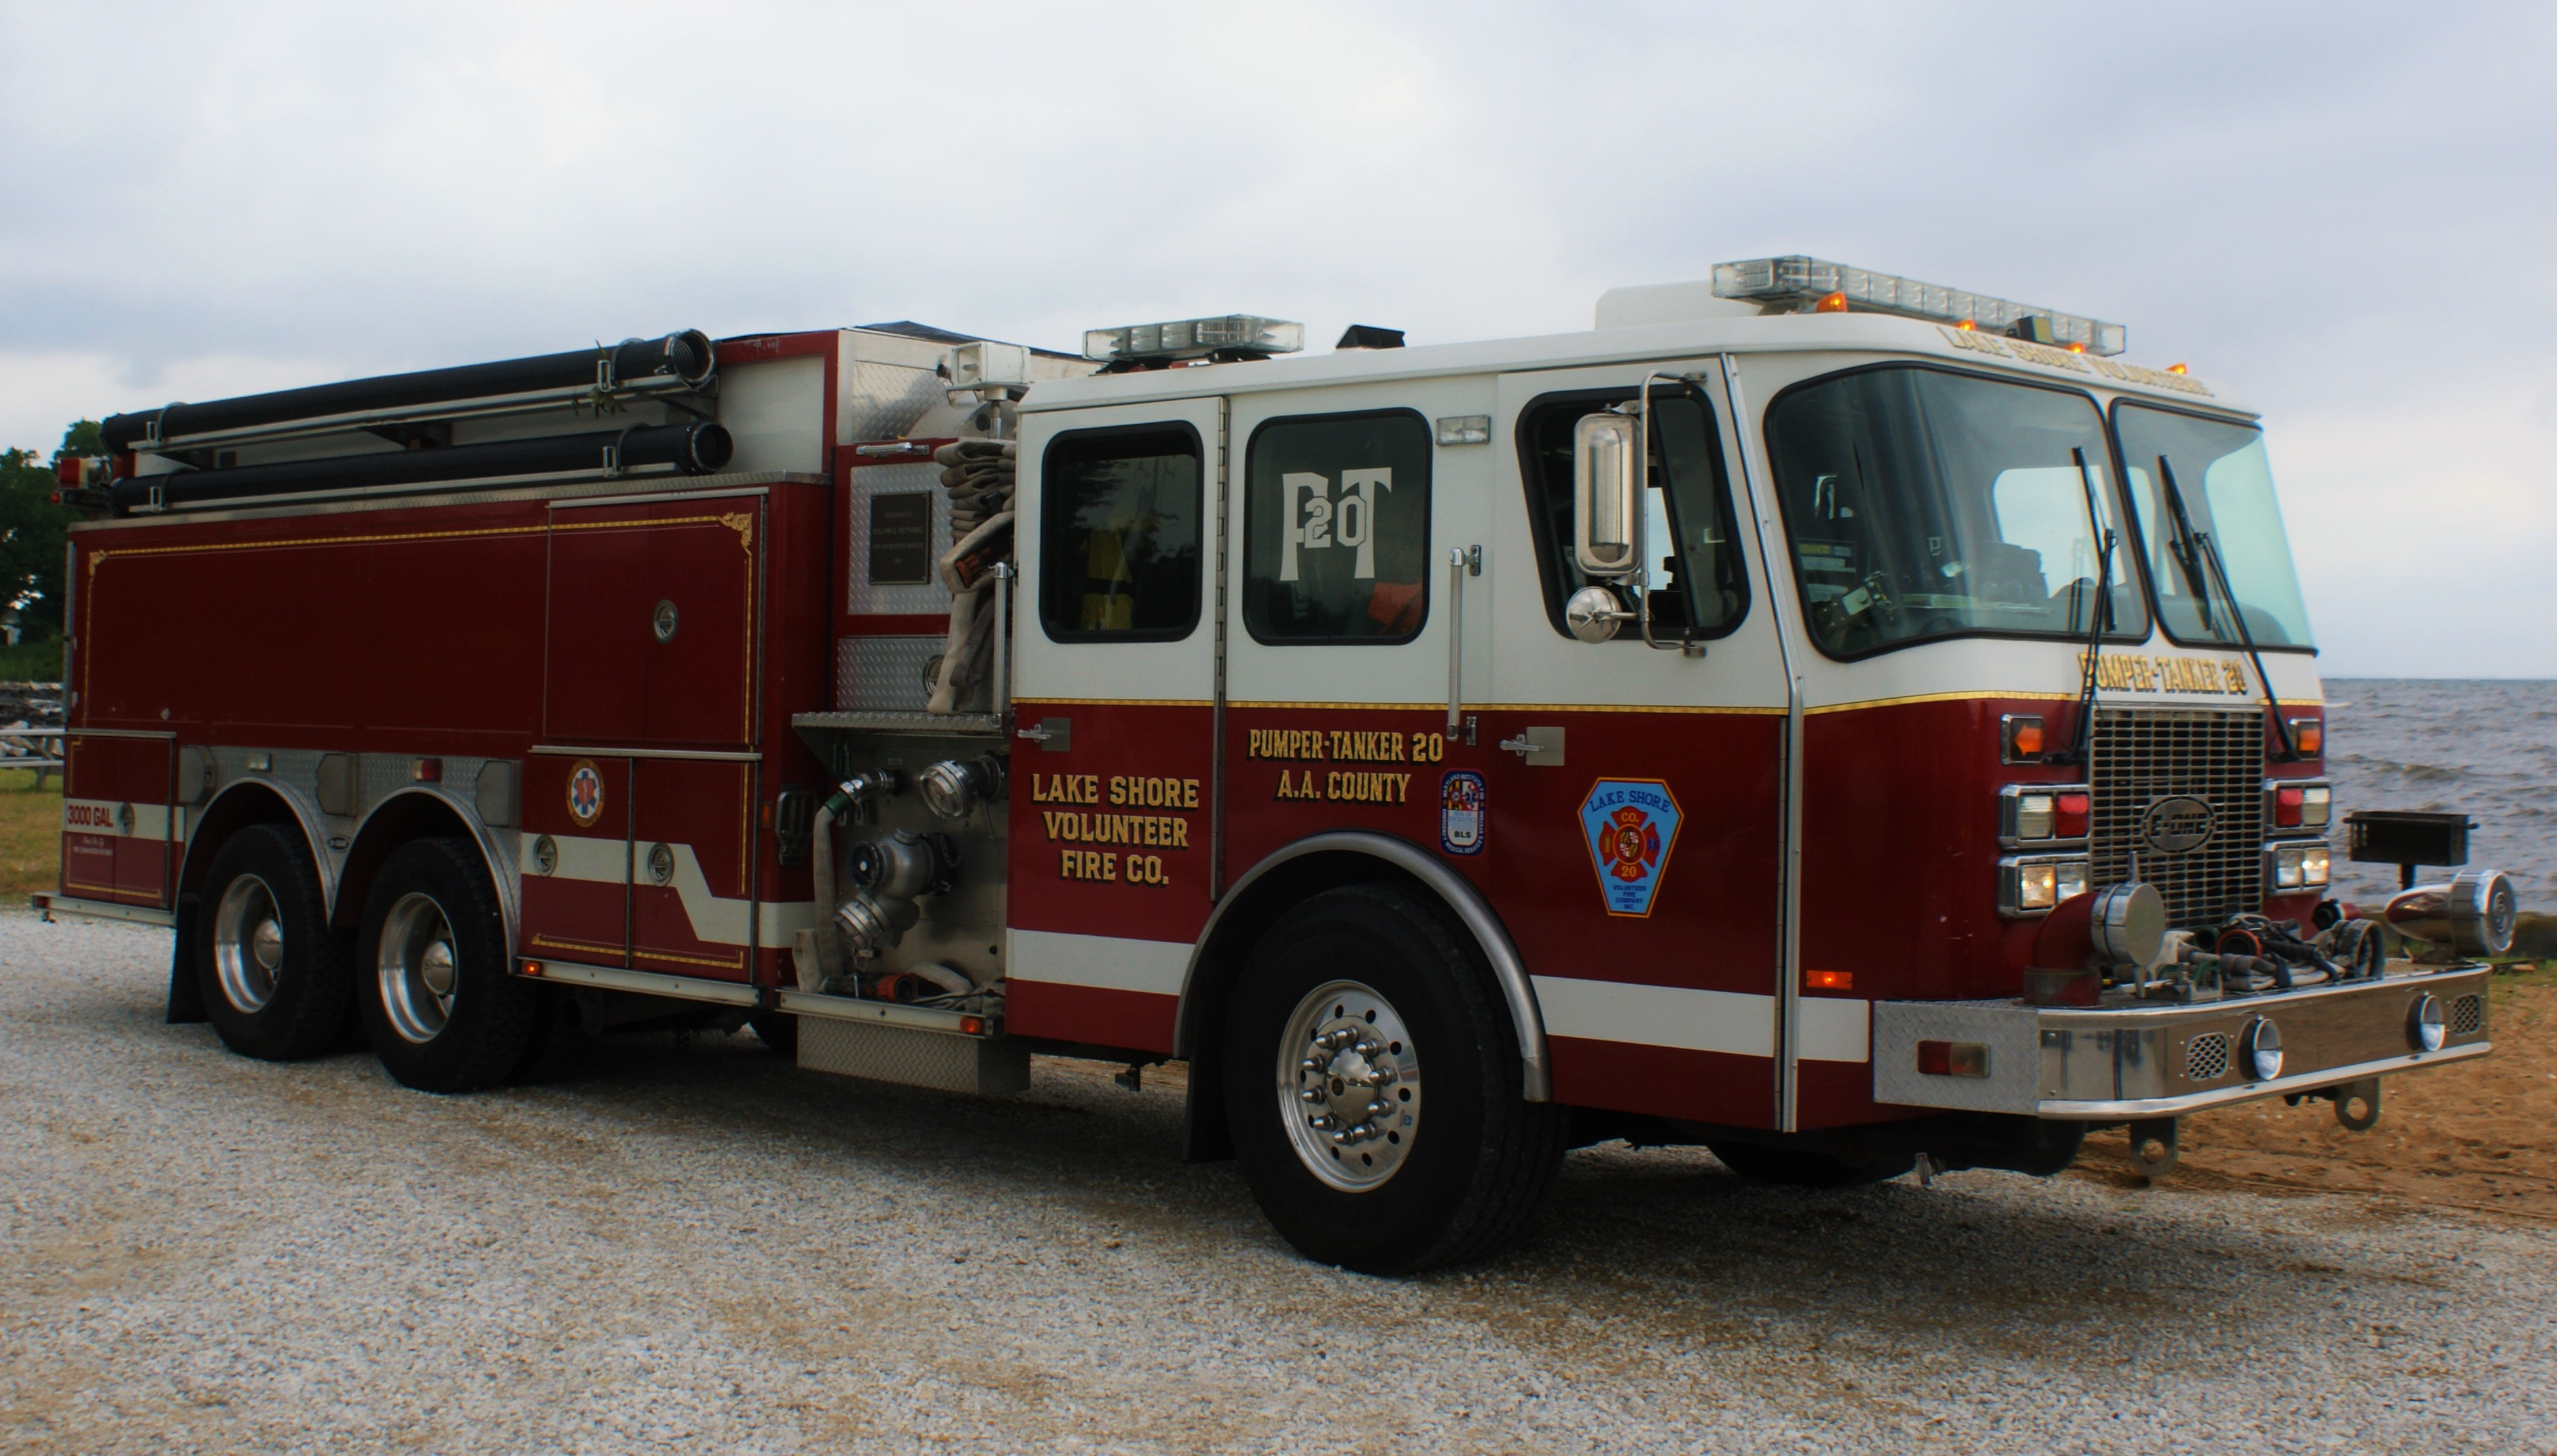 Maryland Map Anne Arundel County%0A Engine          EONE Cyclone Pumper Tanker Water capacity       gallons         GPM Crew capacity  u   d    Eng  HP     Spd Auto transmission  owned by  the